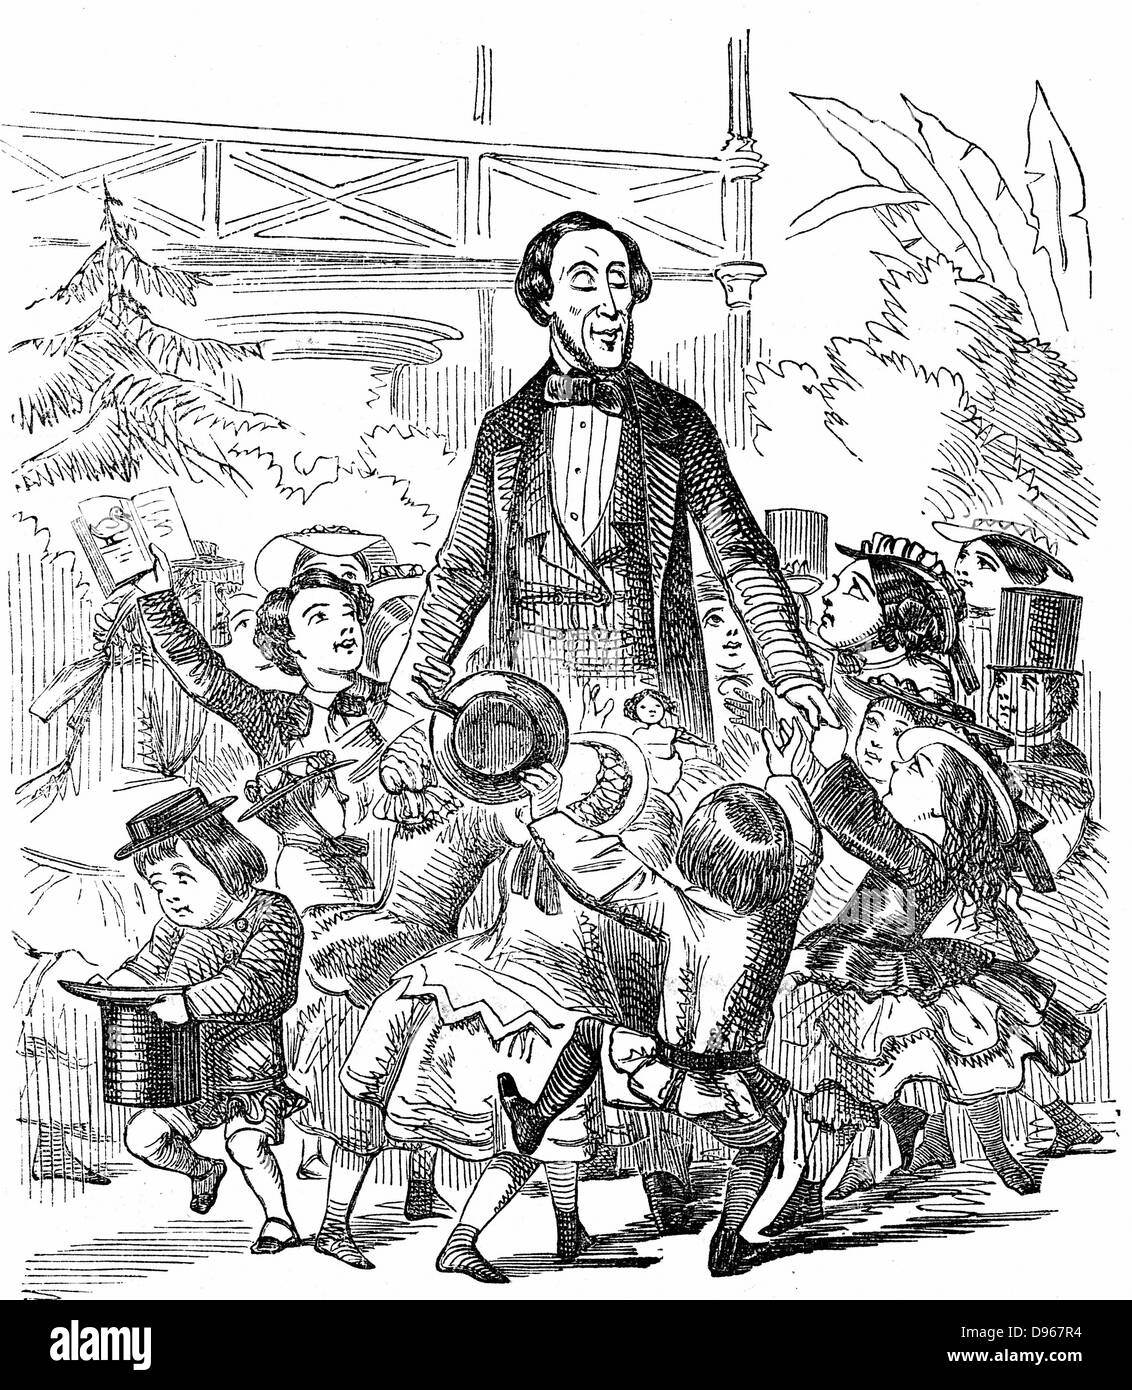 Hans Christian Andersen (1805-1875) Danish author, particularly remembered for his fairy tales. Andersen surrounded - Stock Image